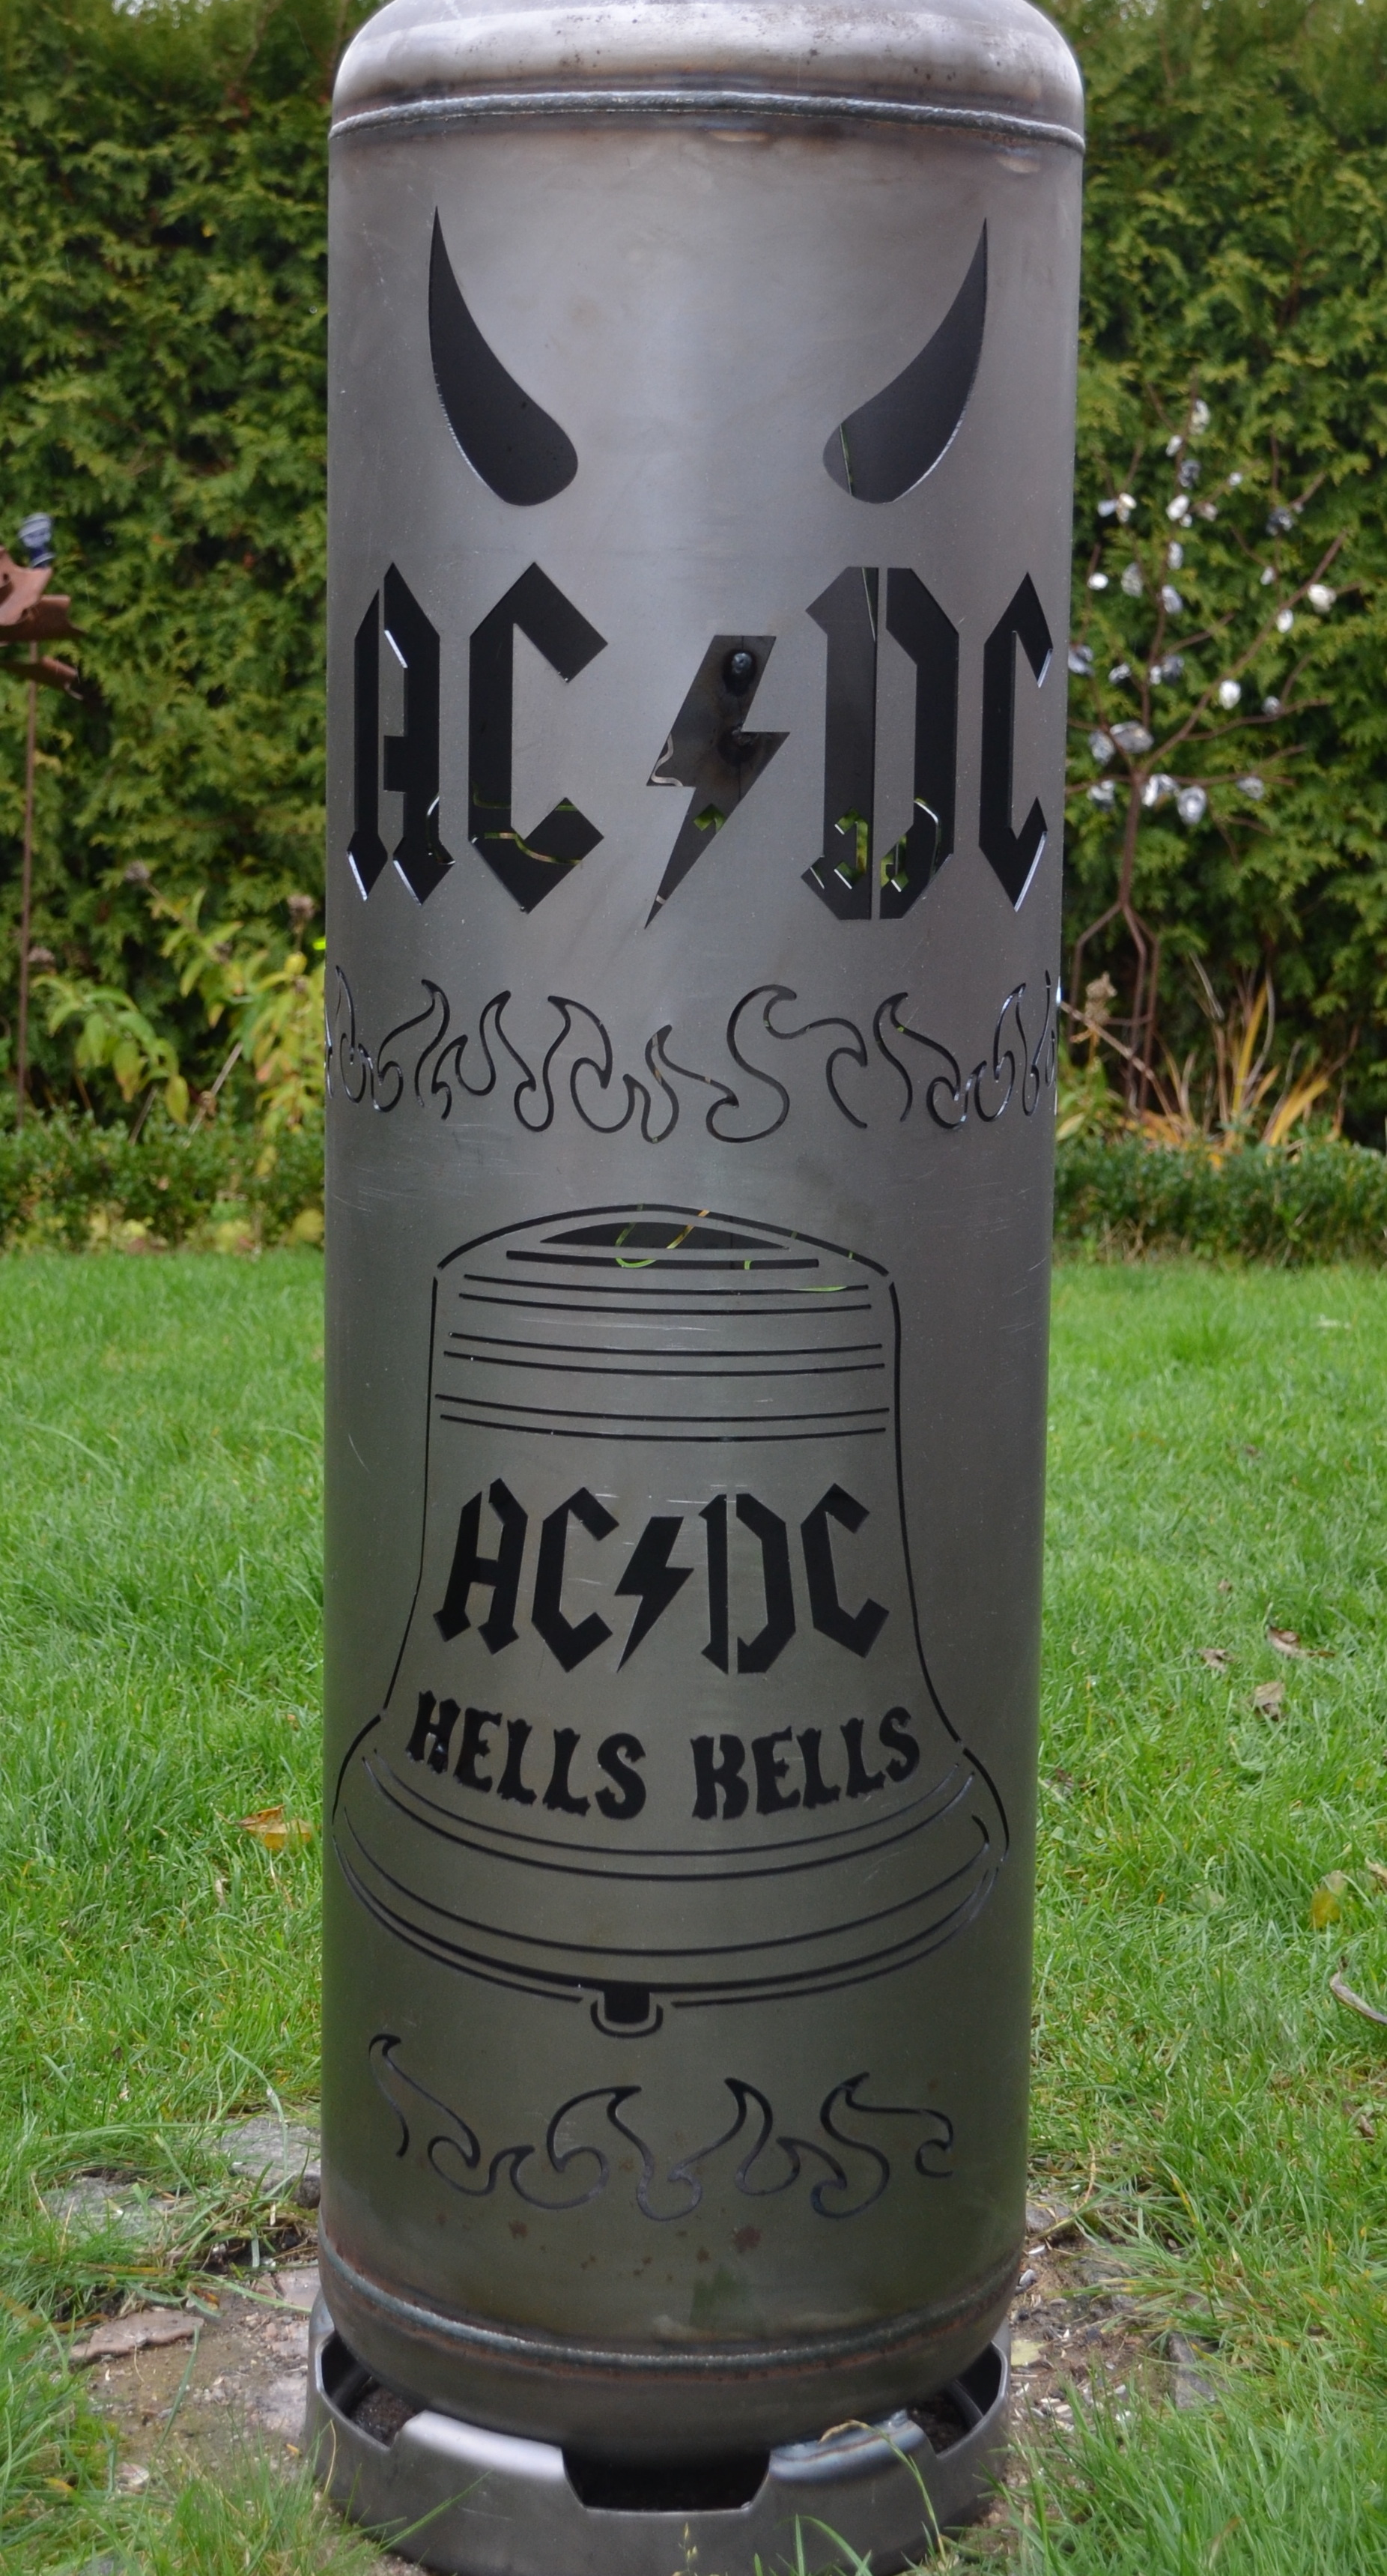 acdc_gas